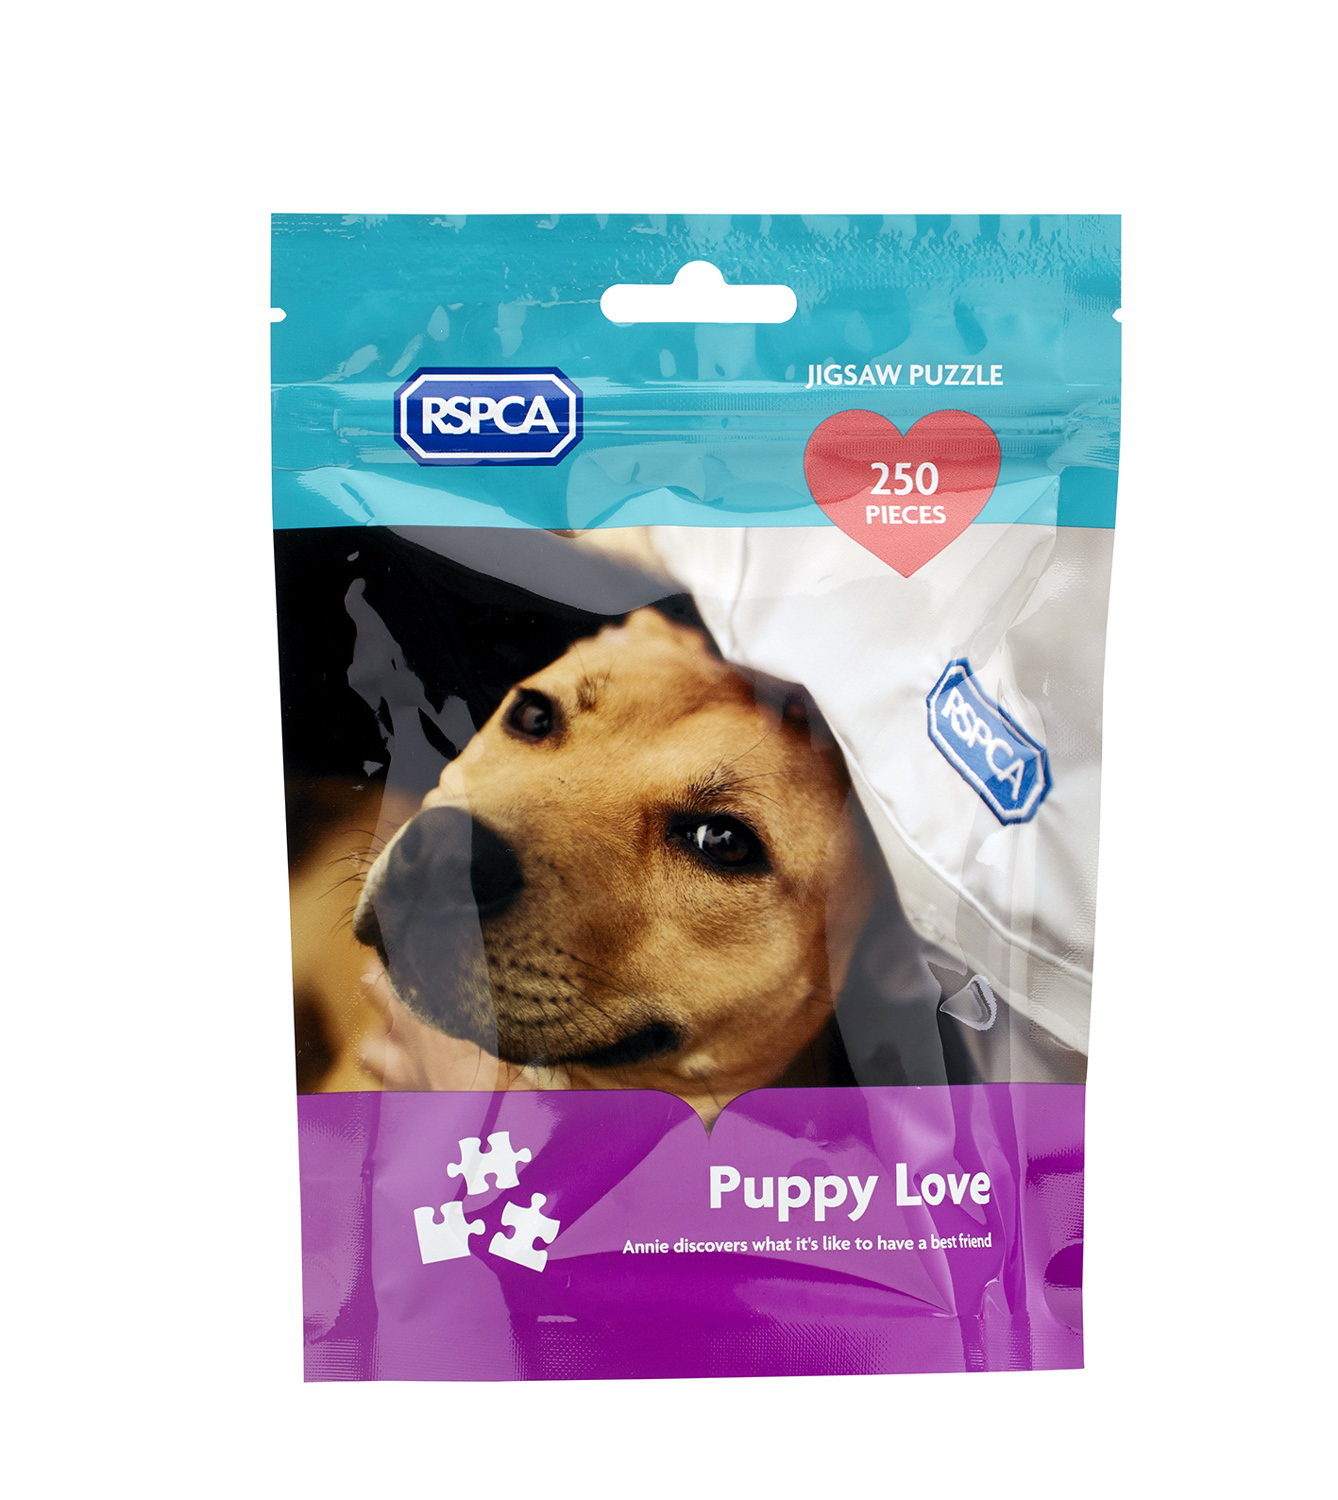 G2611 RSPCA Puppy Love pouch-web